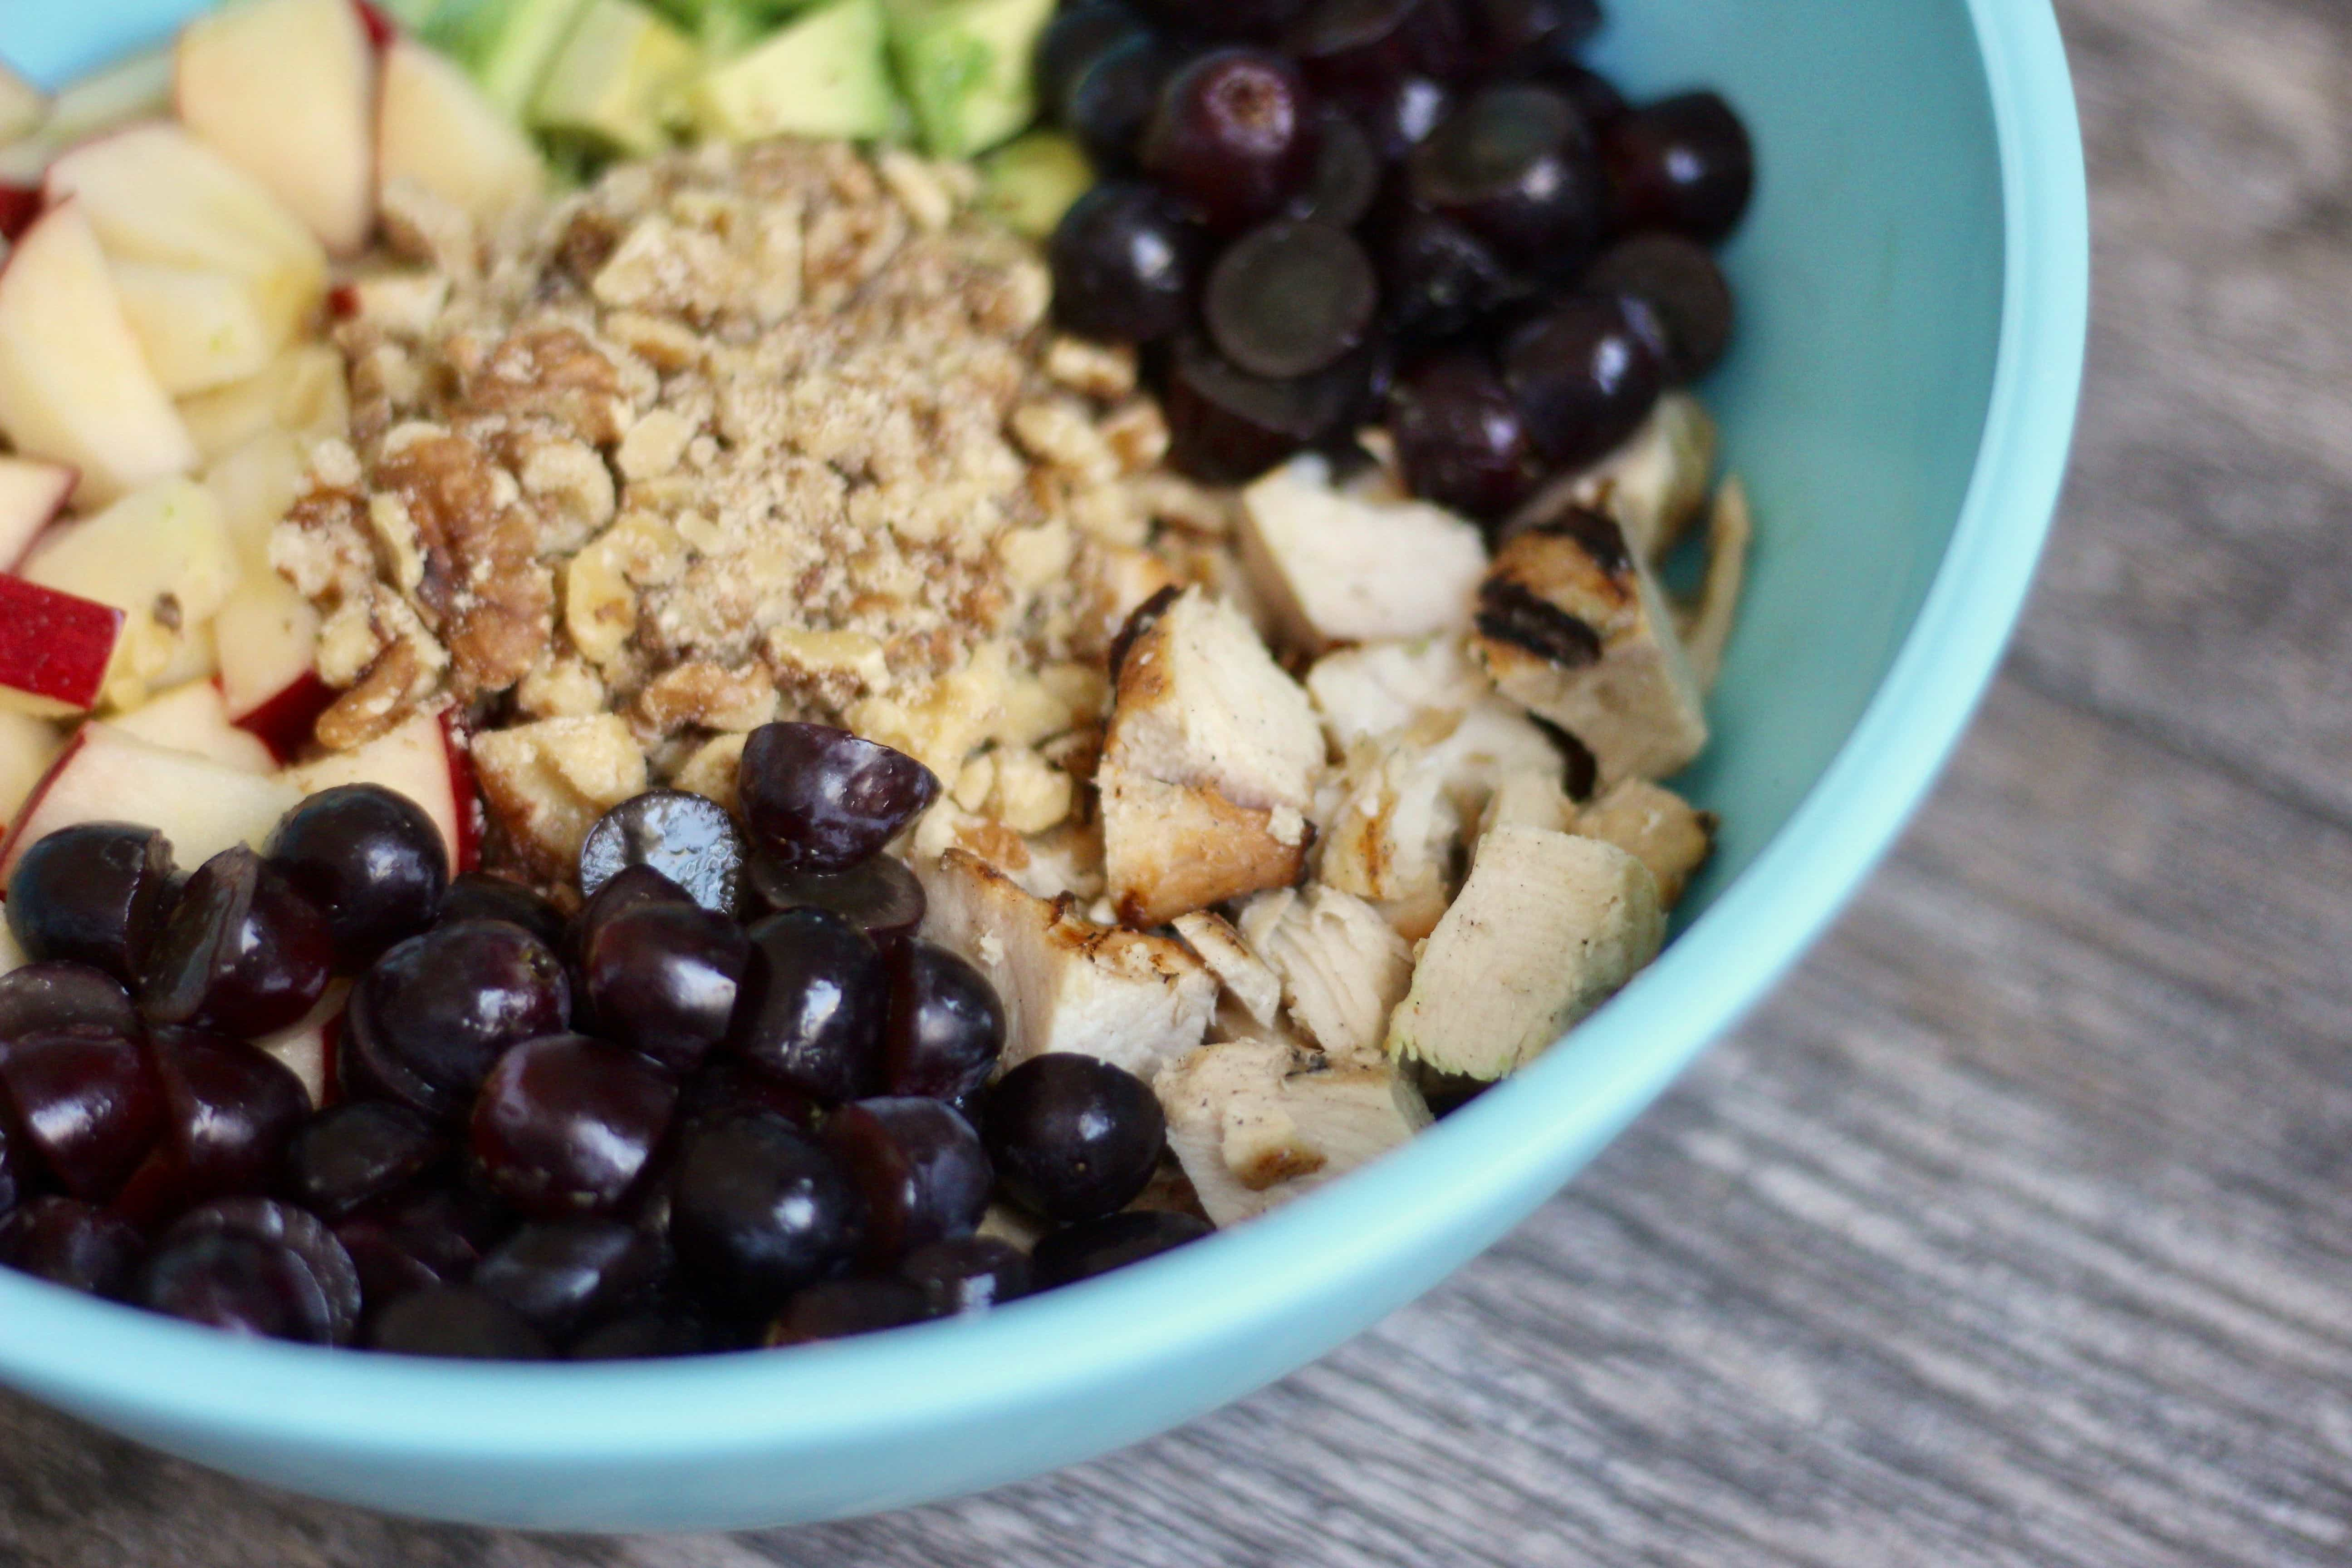 21 Day Fix Avocado Chicken Salad | Confessions of a Fit Foodie This Avocado Chicken Salad is a quick and easy, clean and healthy, 21 Day Fix approved meal. No mayo is in this salad, just avocado, walnuts, grapes, and apples.